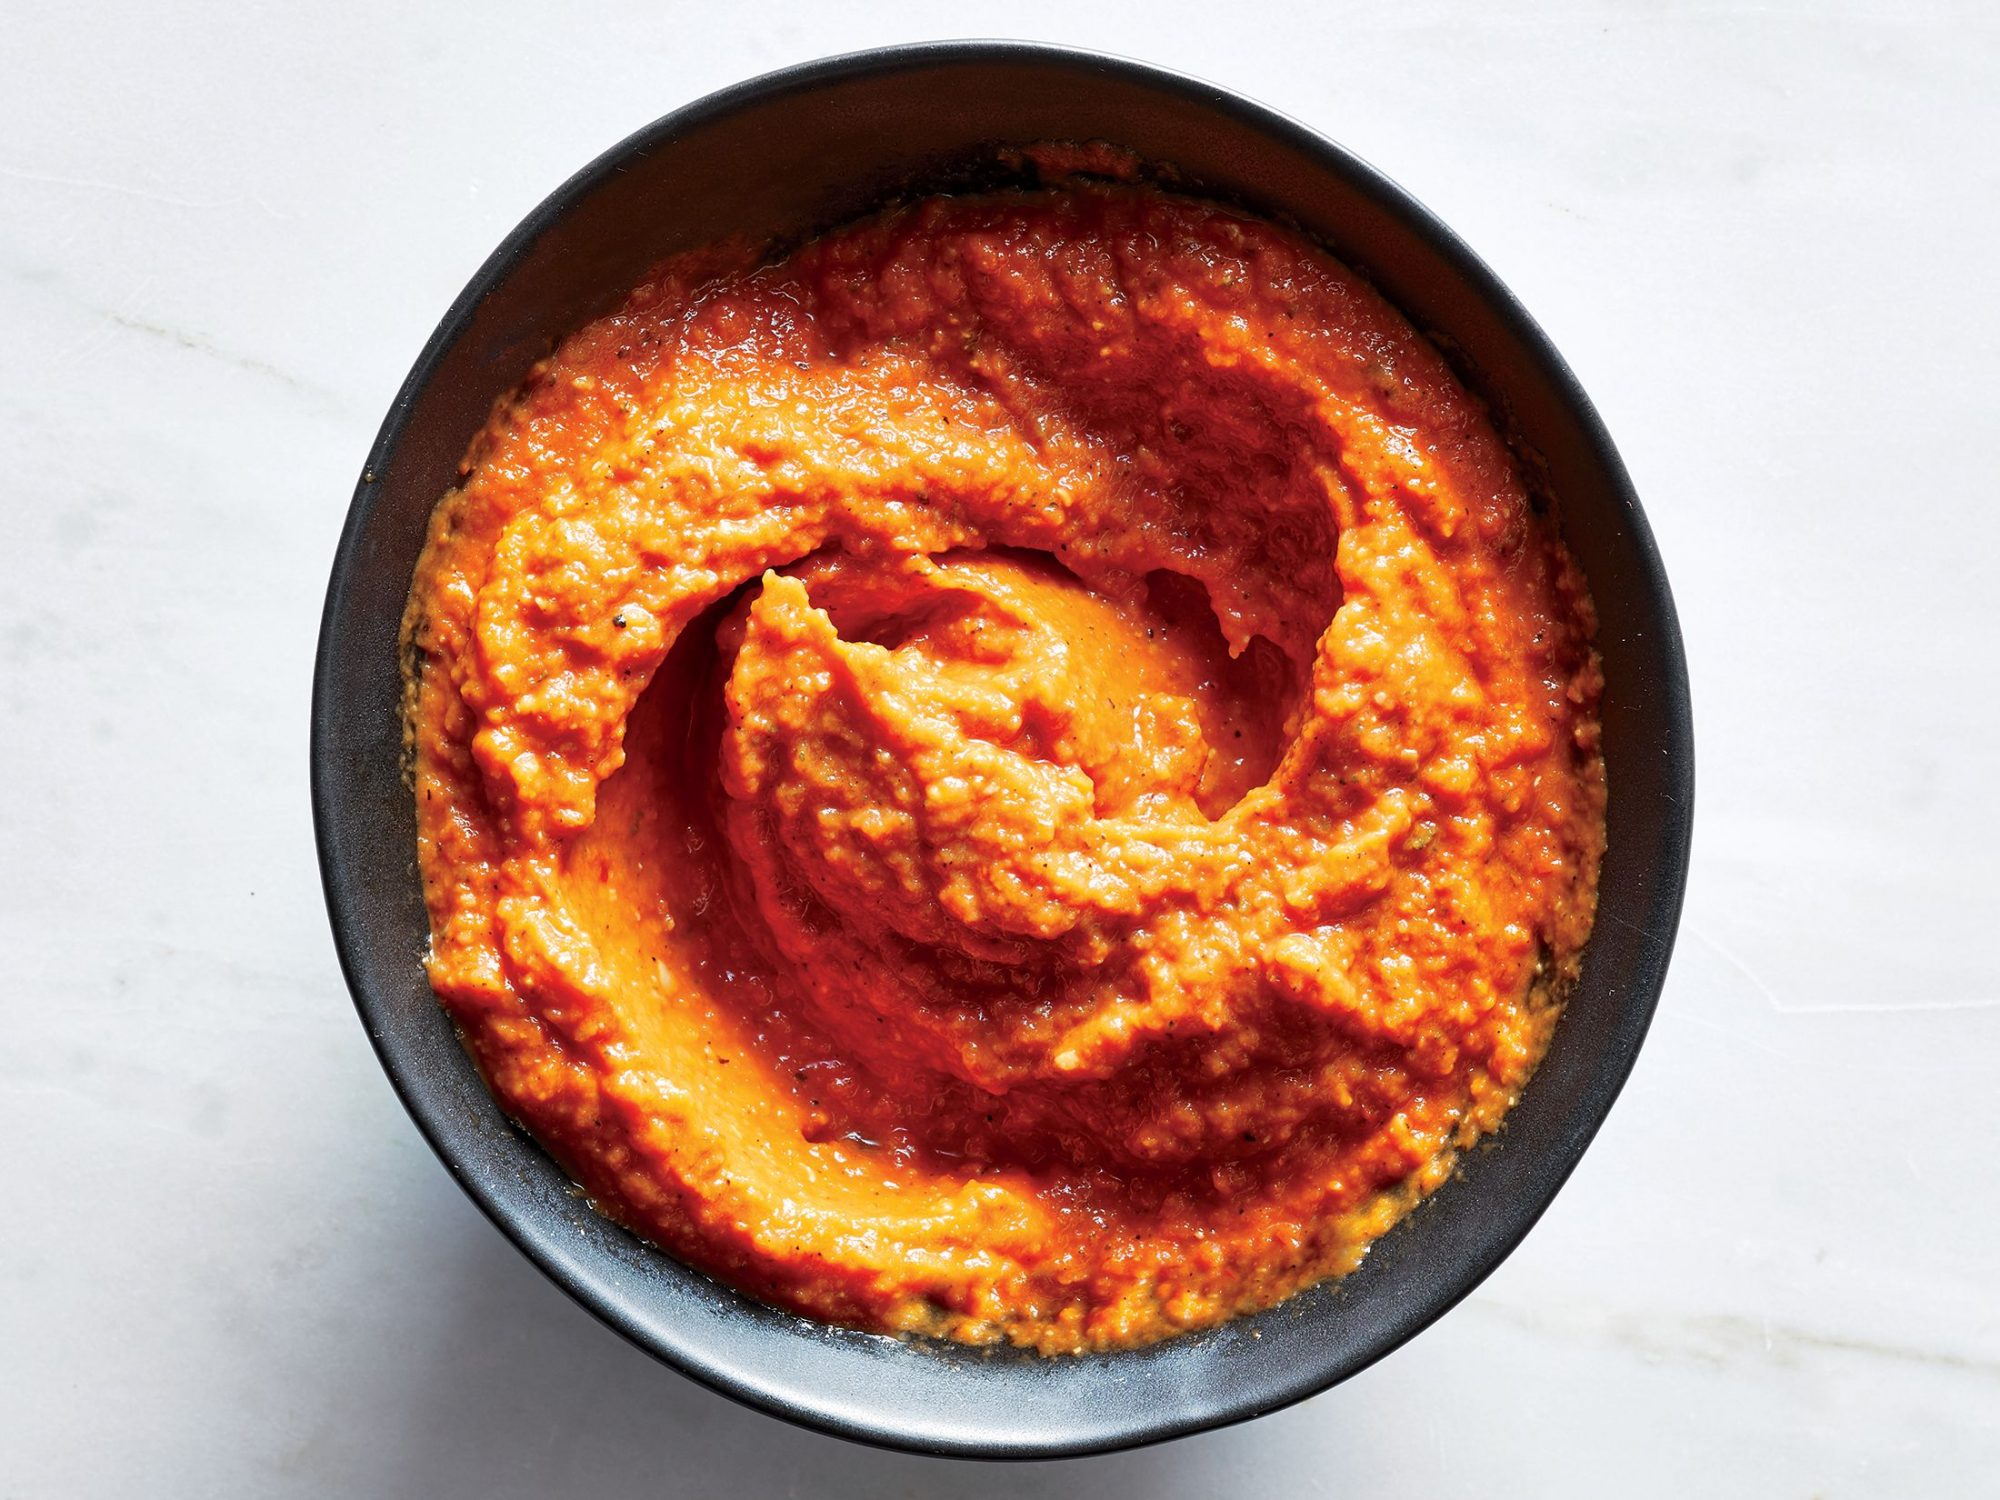 Roasted Tomato-Garlic Sauce